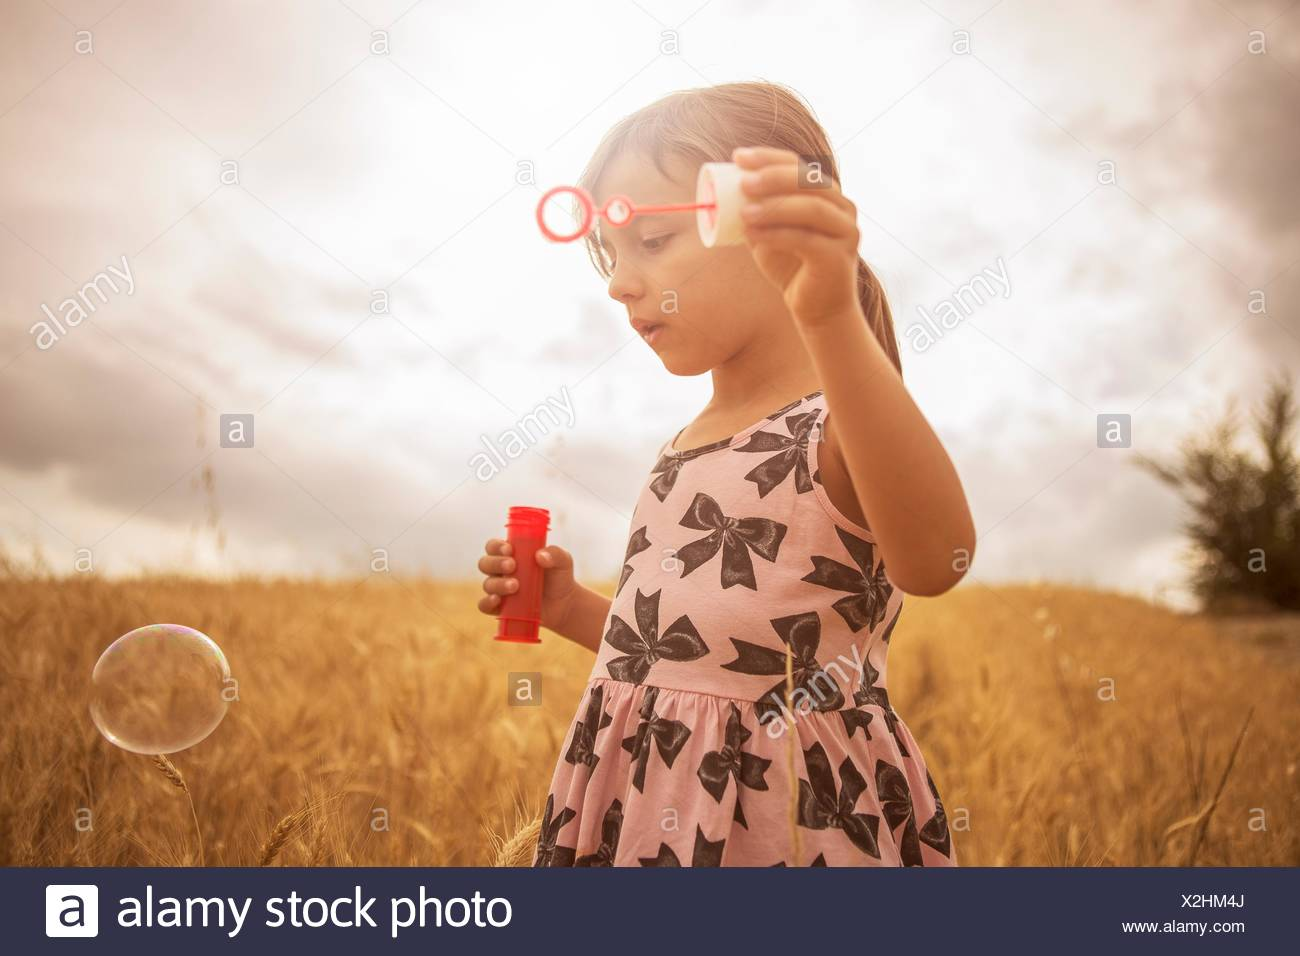 Girl blowing bubbles in wheat field - Stock Image